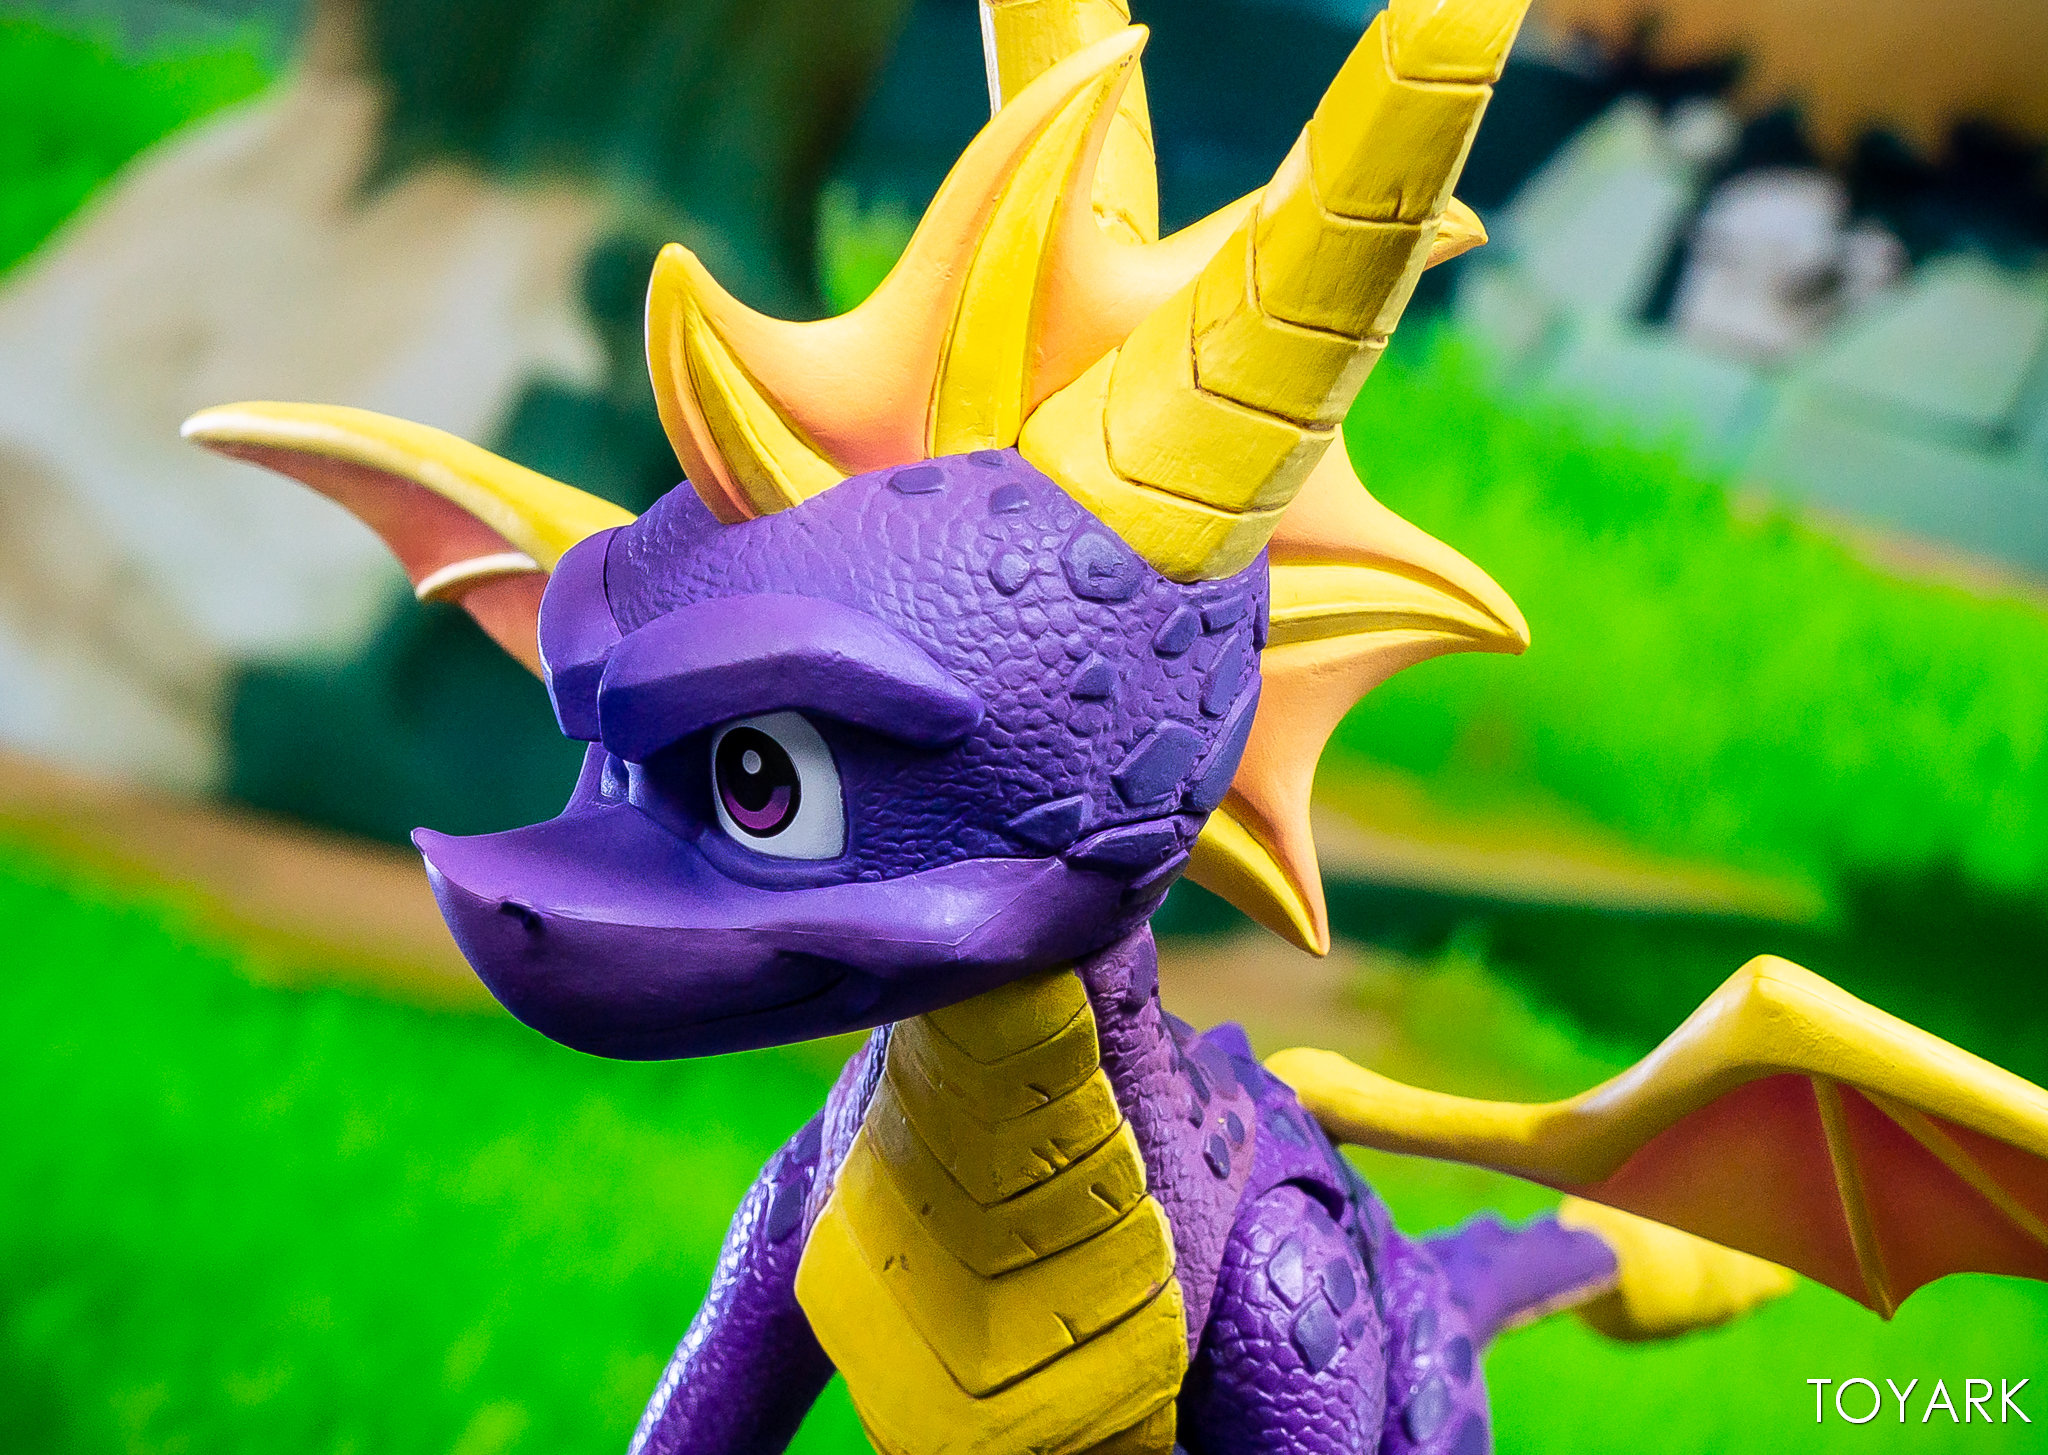 https://news.toyark.com/wp-content/uploads/sites/4/2019/03/NECA-Spyro-The-Dragon-Figure-033.jpg